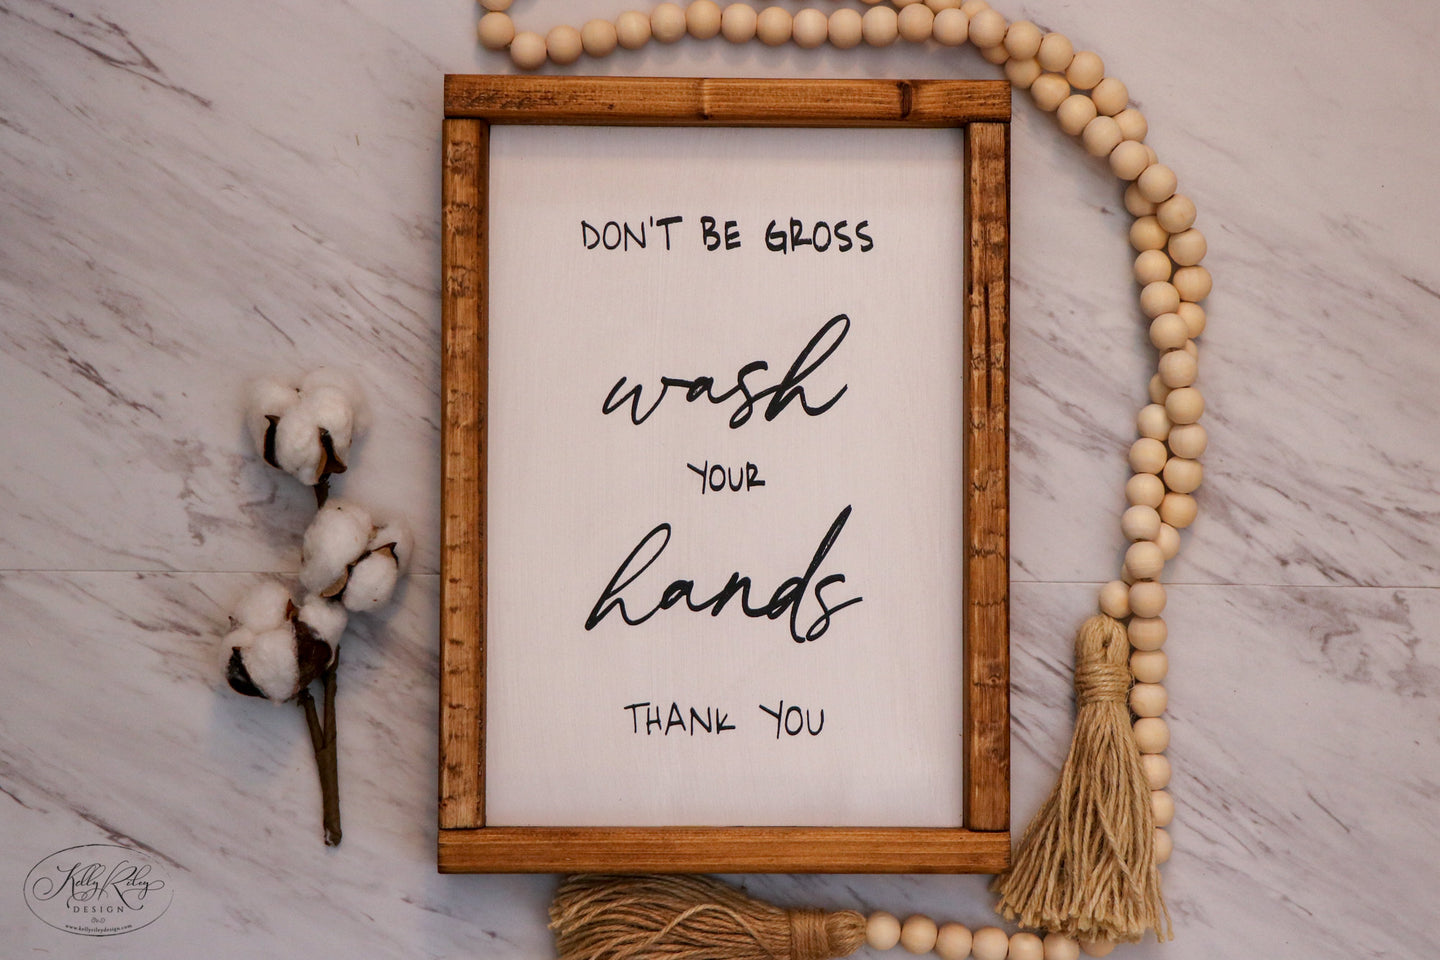 Don't Be Gross Wash Your Hands | Framed Wood Sign | 9x12